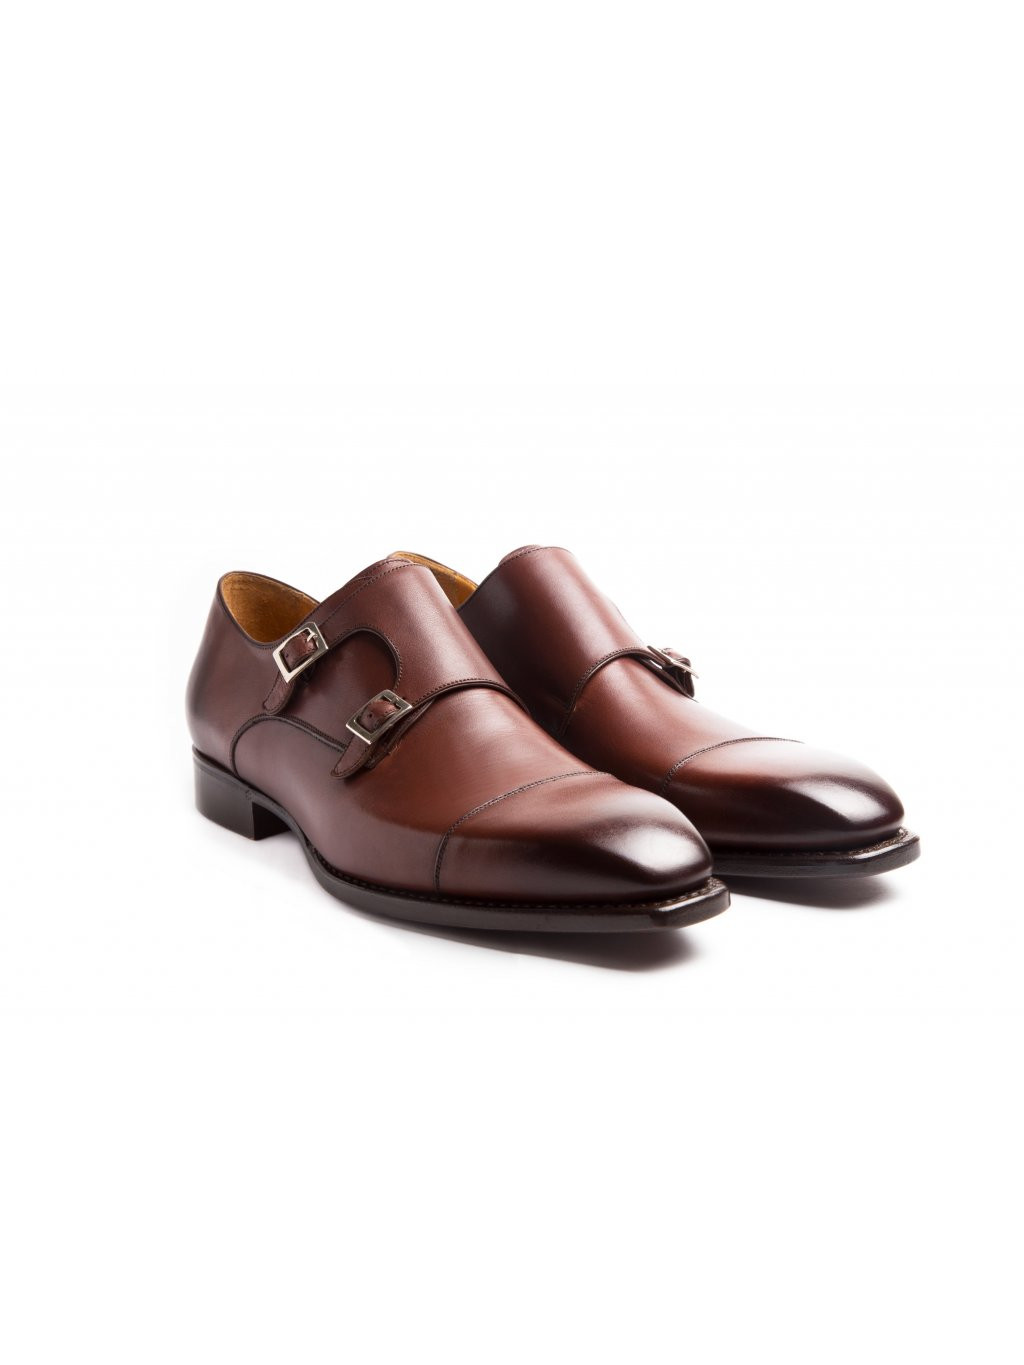 Boty double monks brown